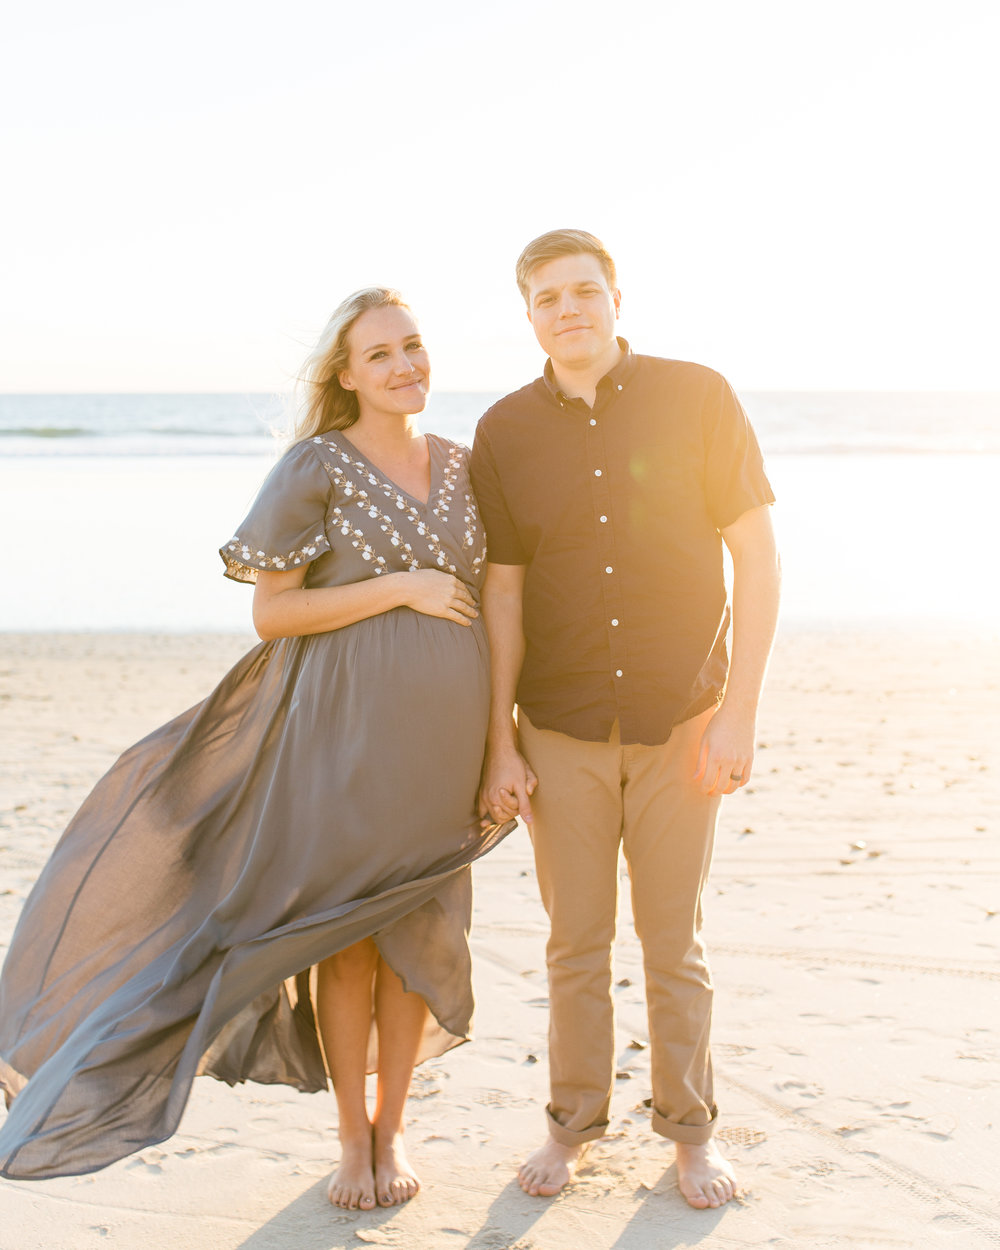 southern california maternity photo session